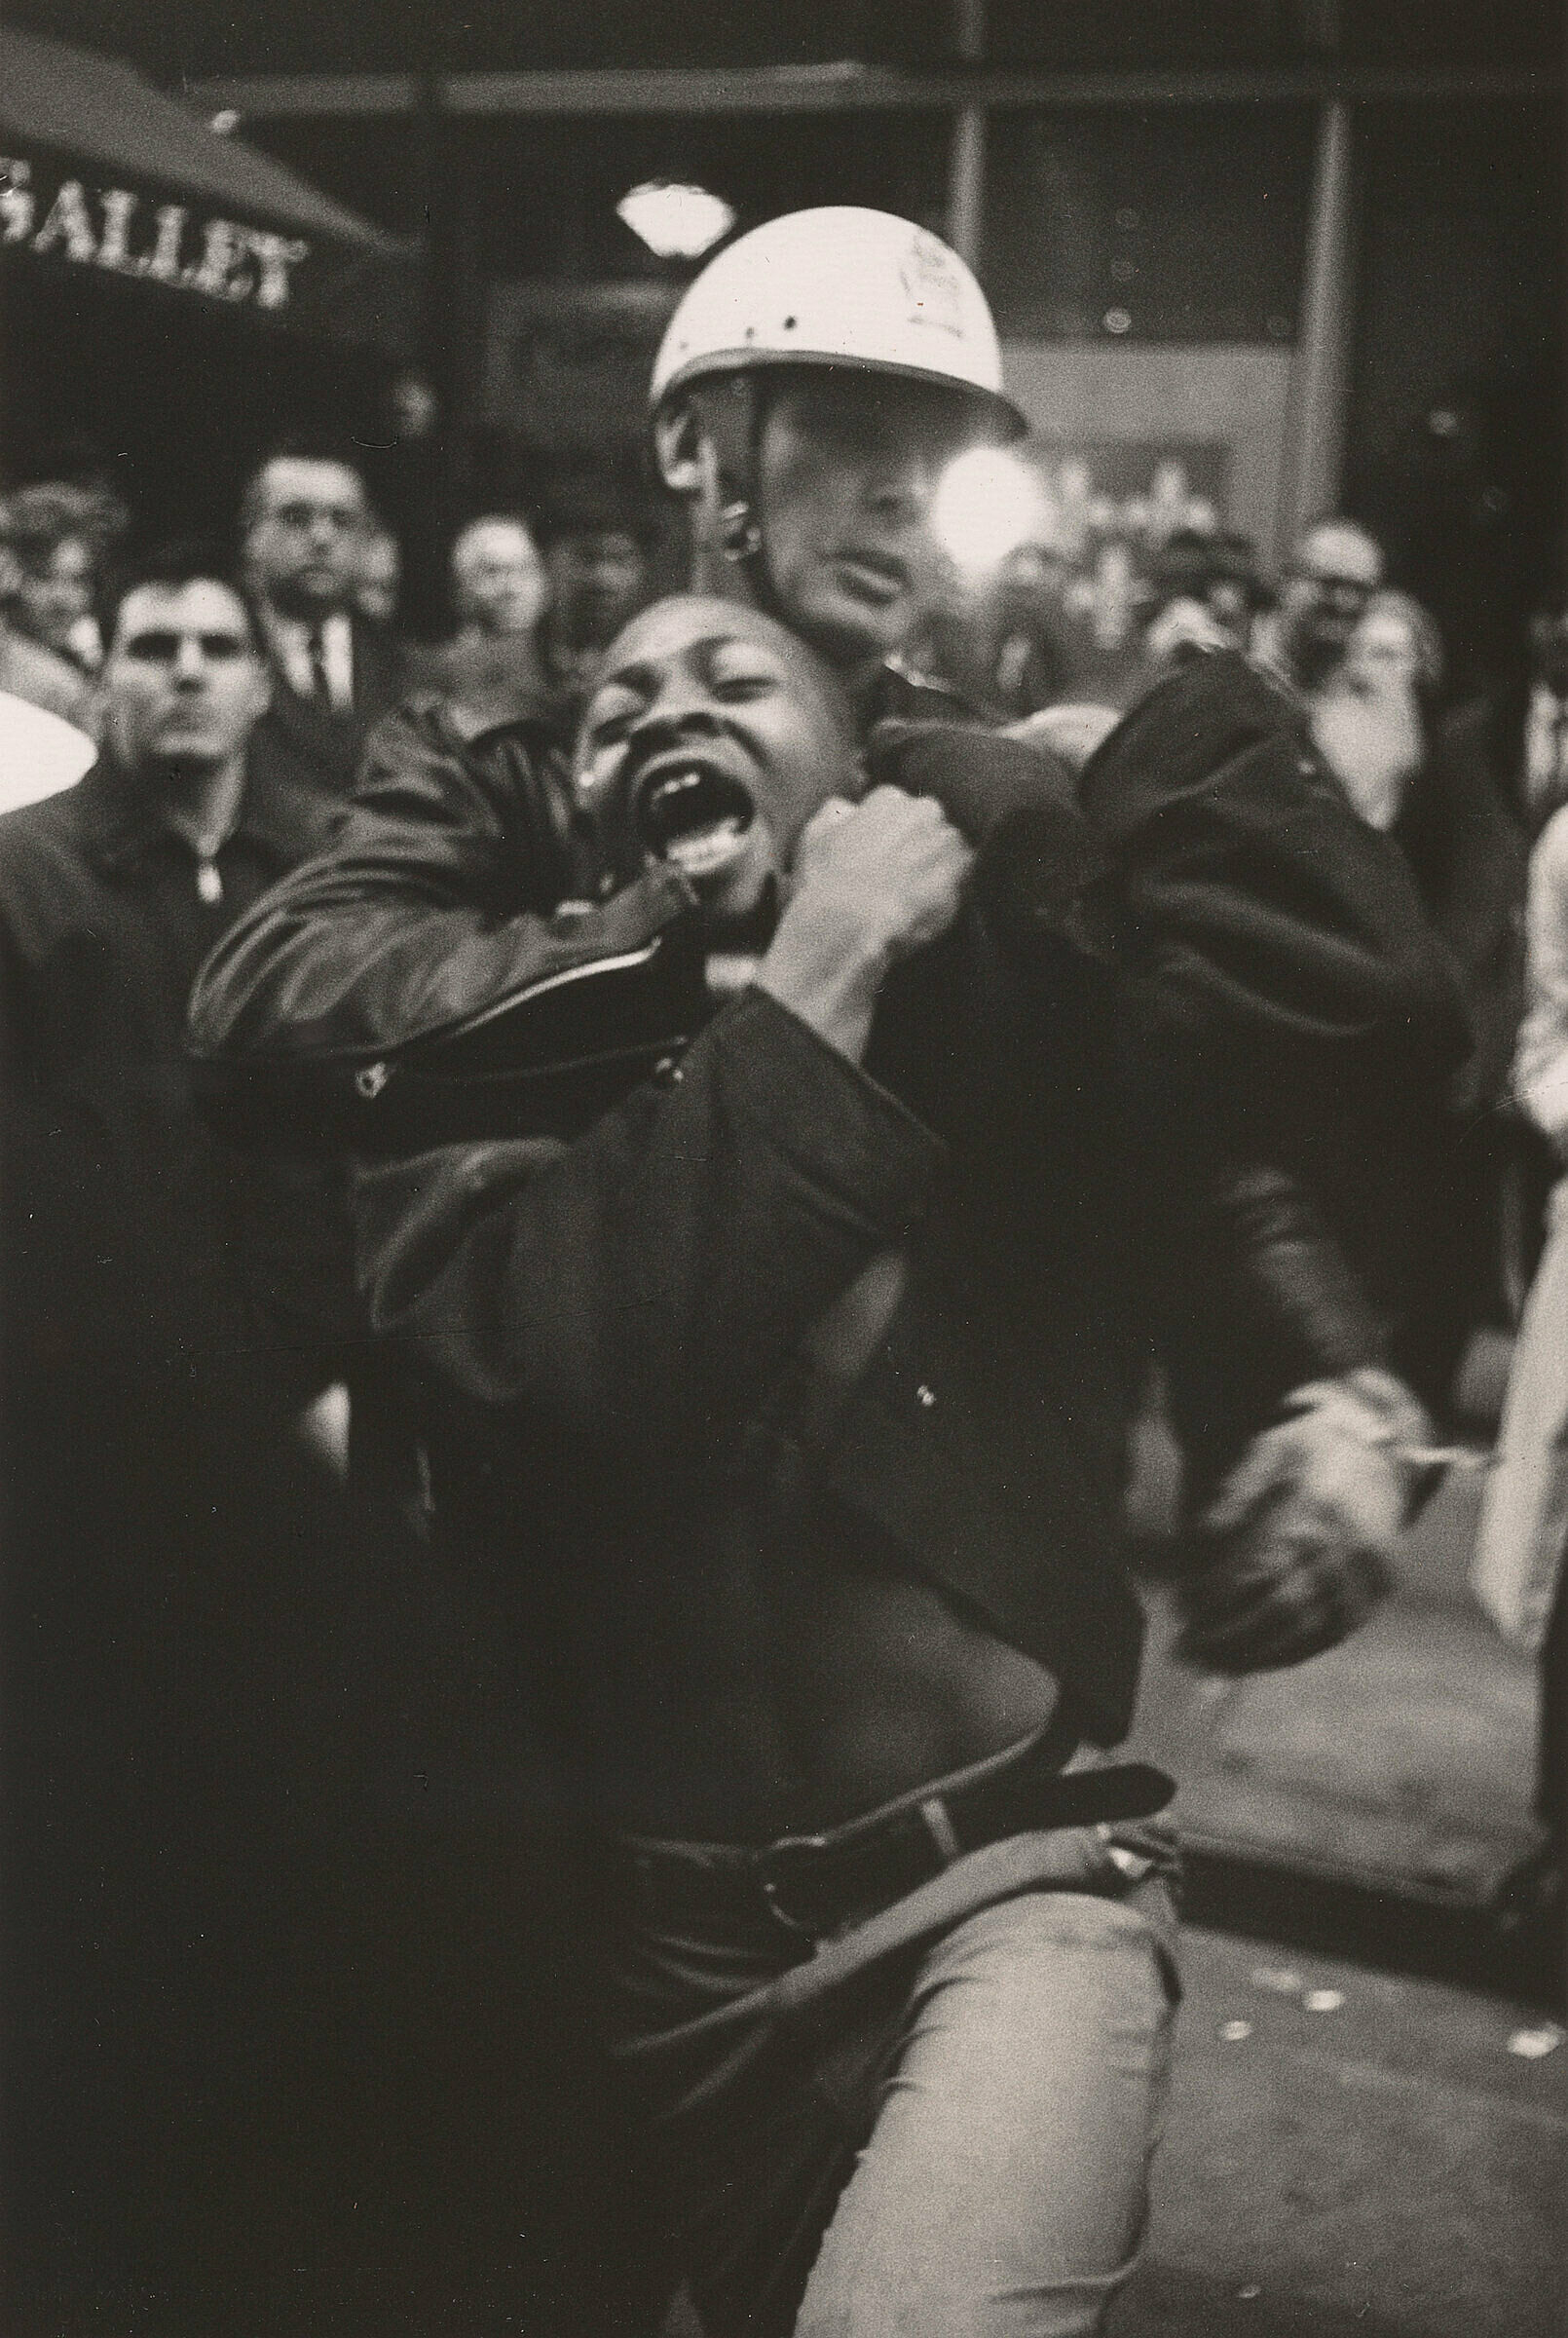 A work by Danny Lyon. A man is arrested by a police officer